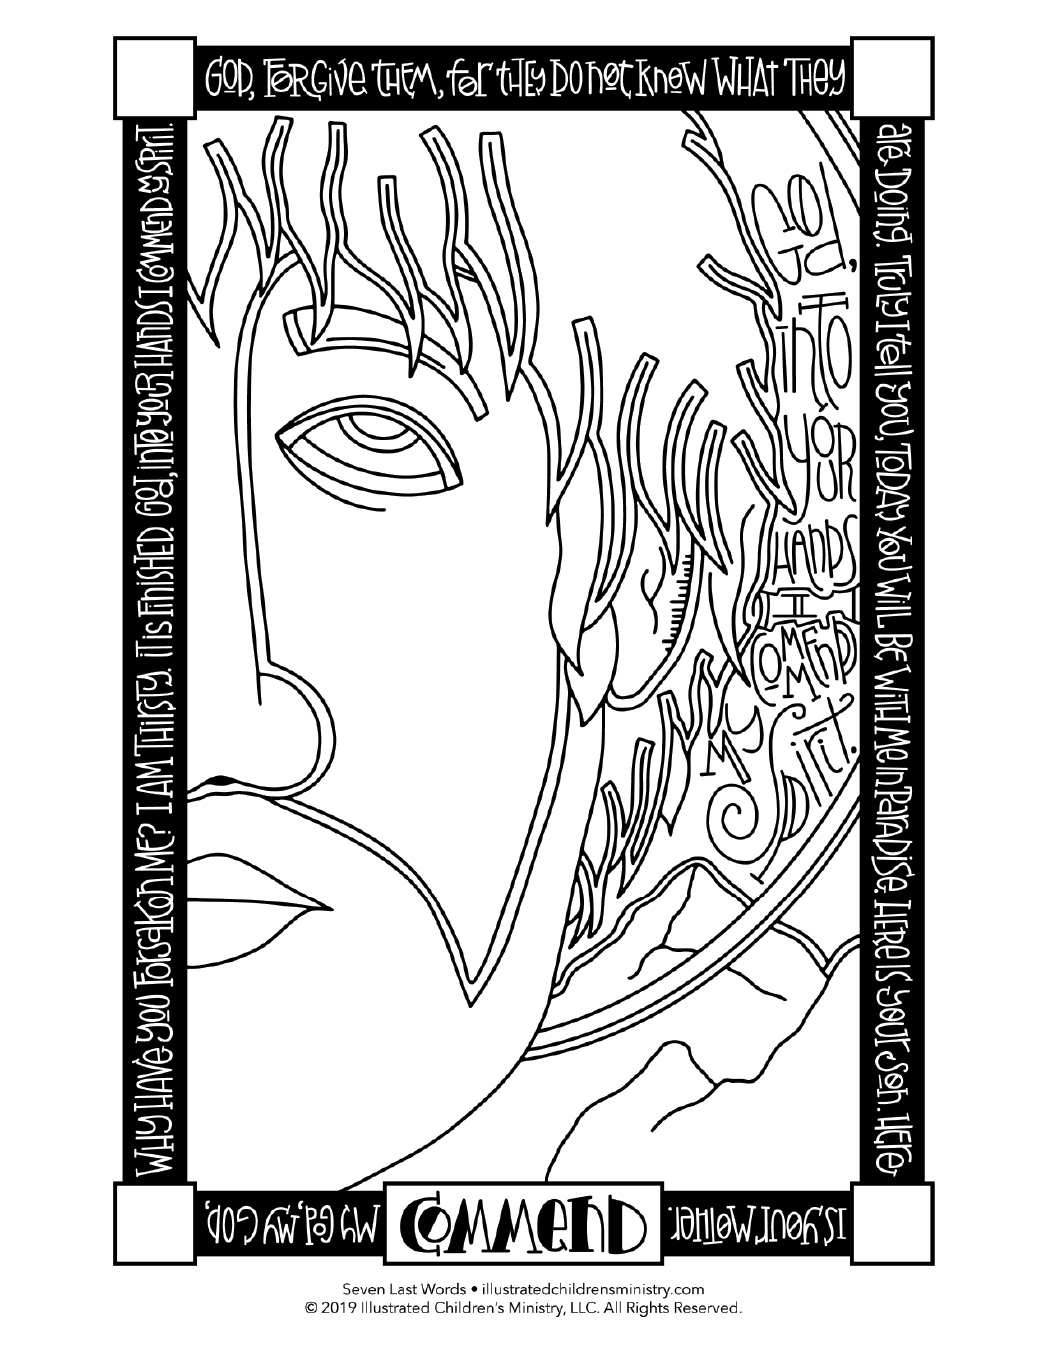 Seven Last Words coloring page simple - commend